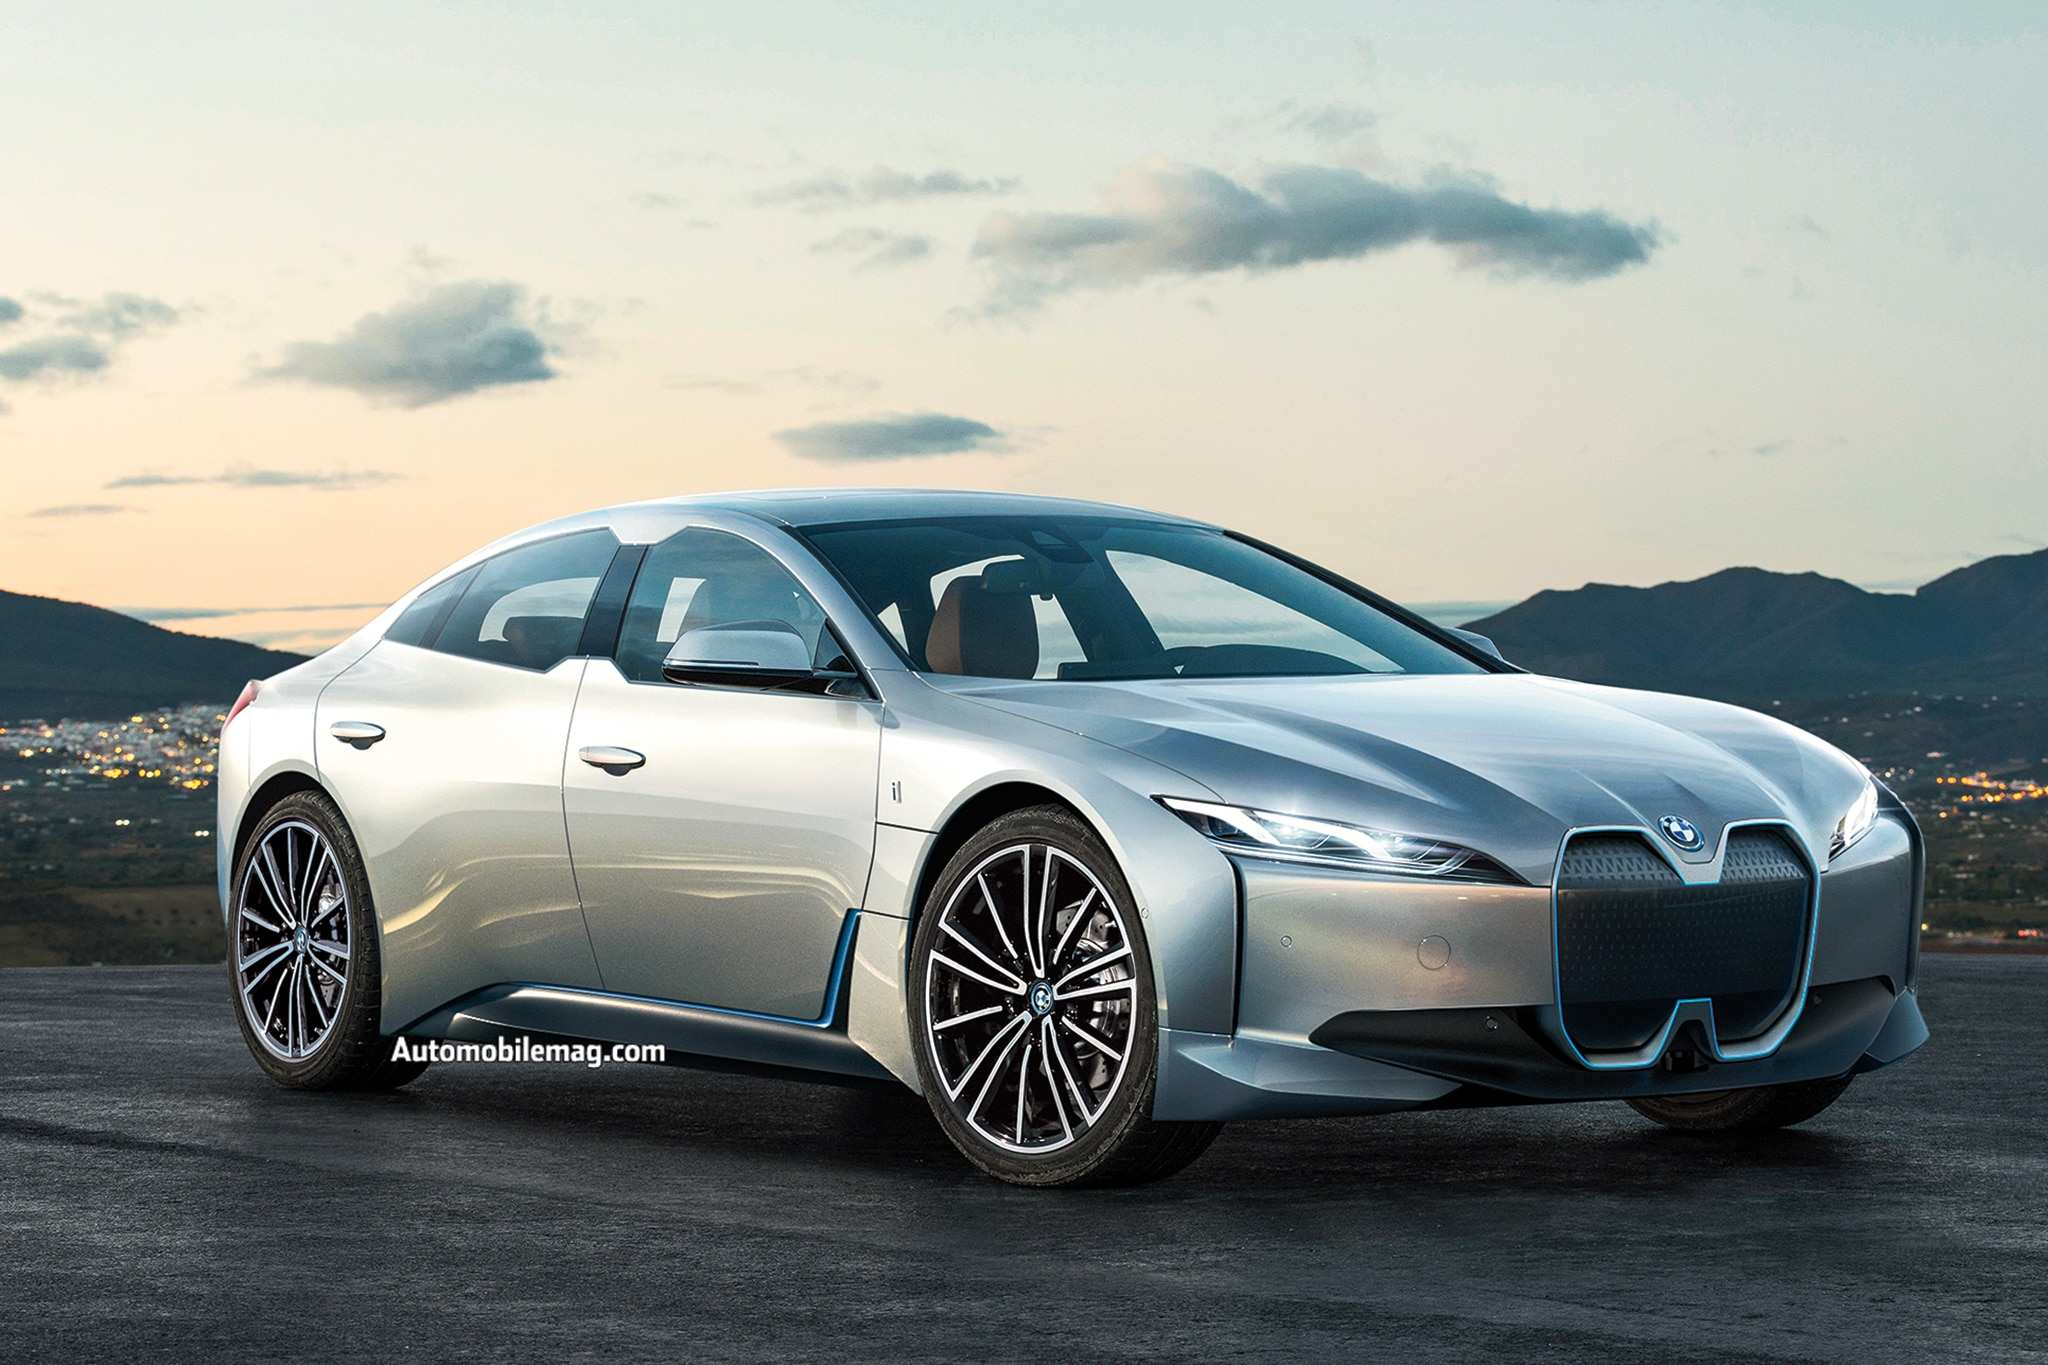 86 All New 2019 Bmw Cars Pricing with 2019 Bmw Cars